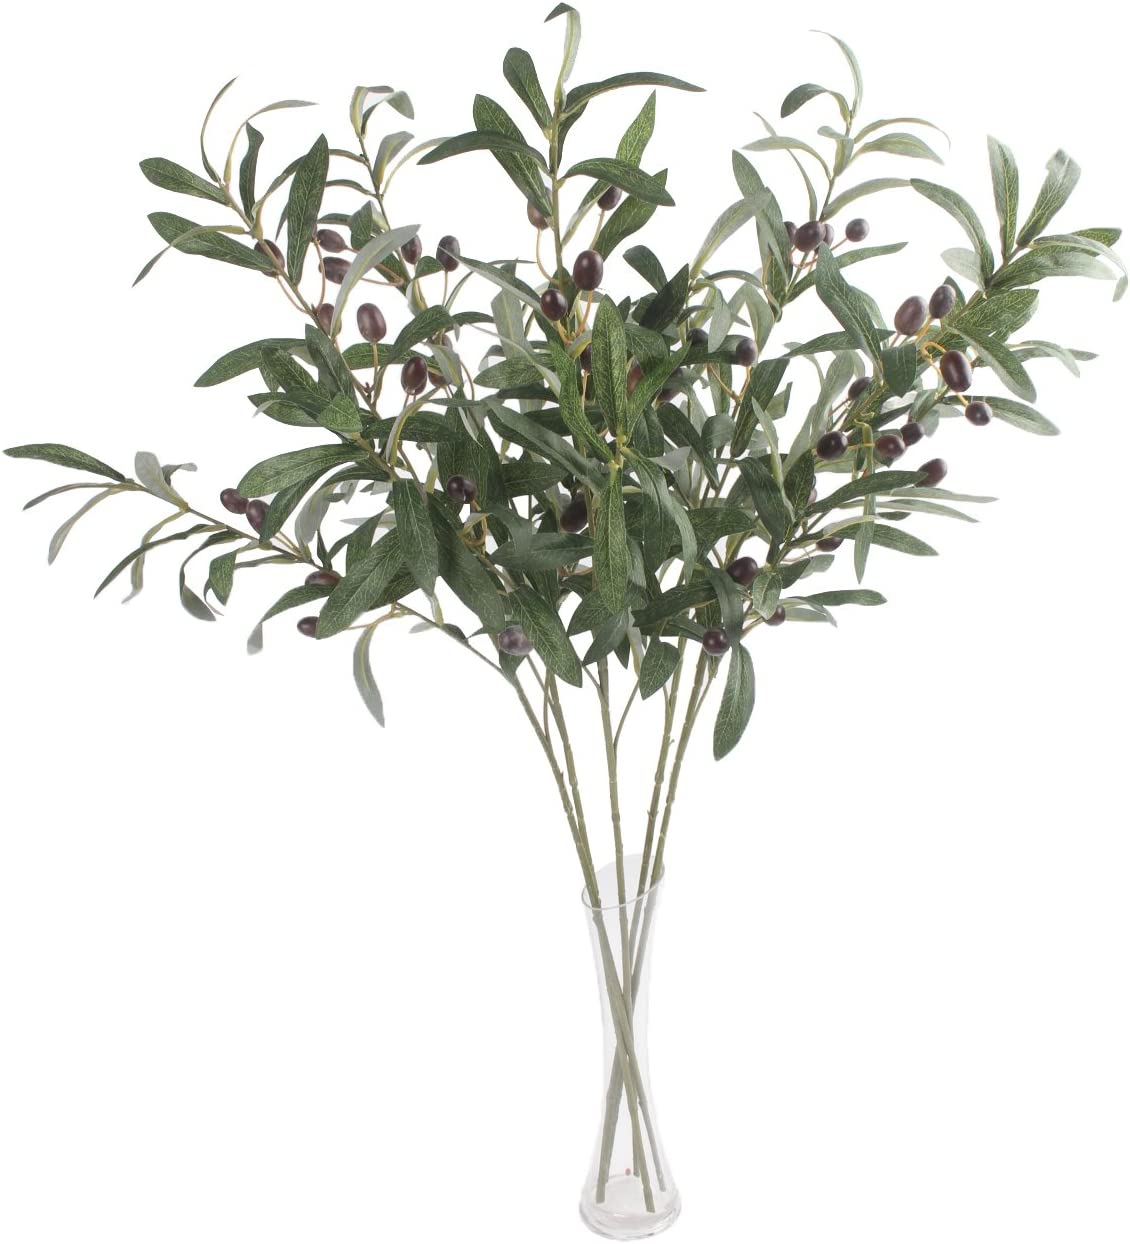 JAROWN 5 pcs 28 inch Green Olive Artificial Plants Branches Fruits Fake Flowers Branch Leaves for Home Office Crafts Decoration